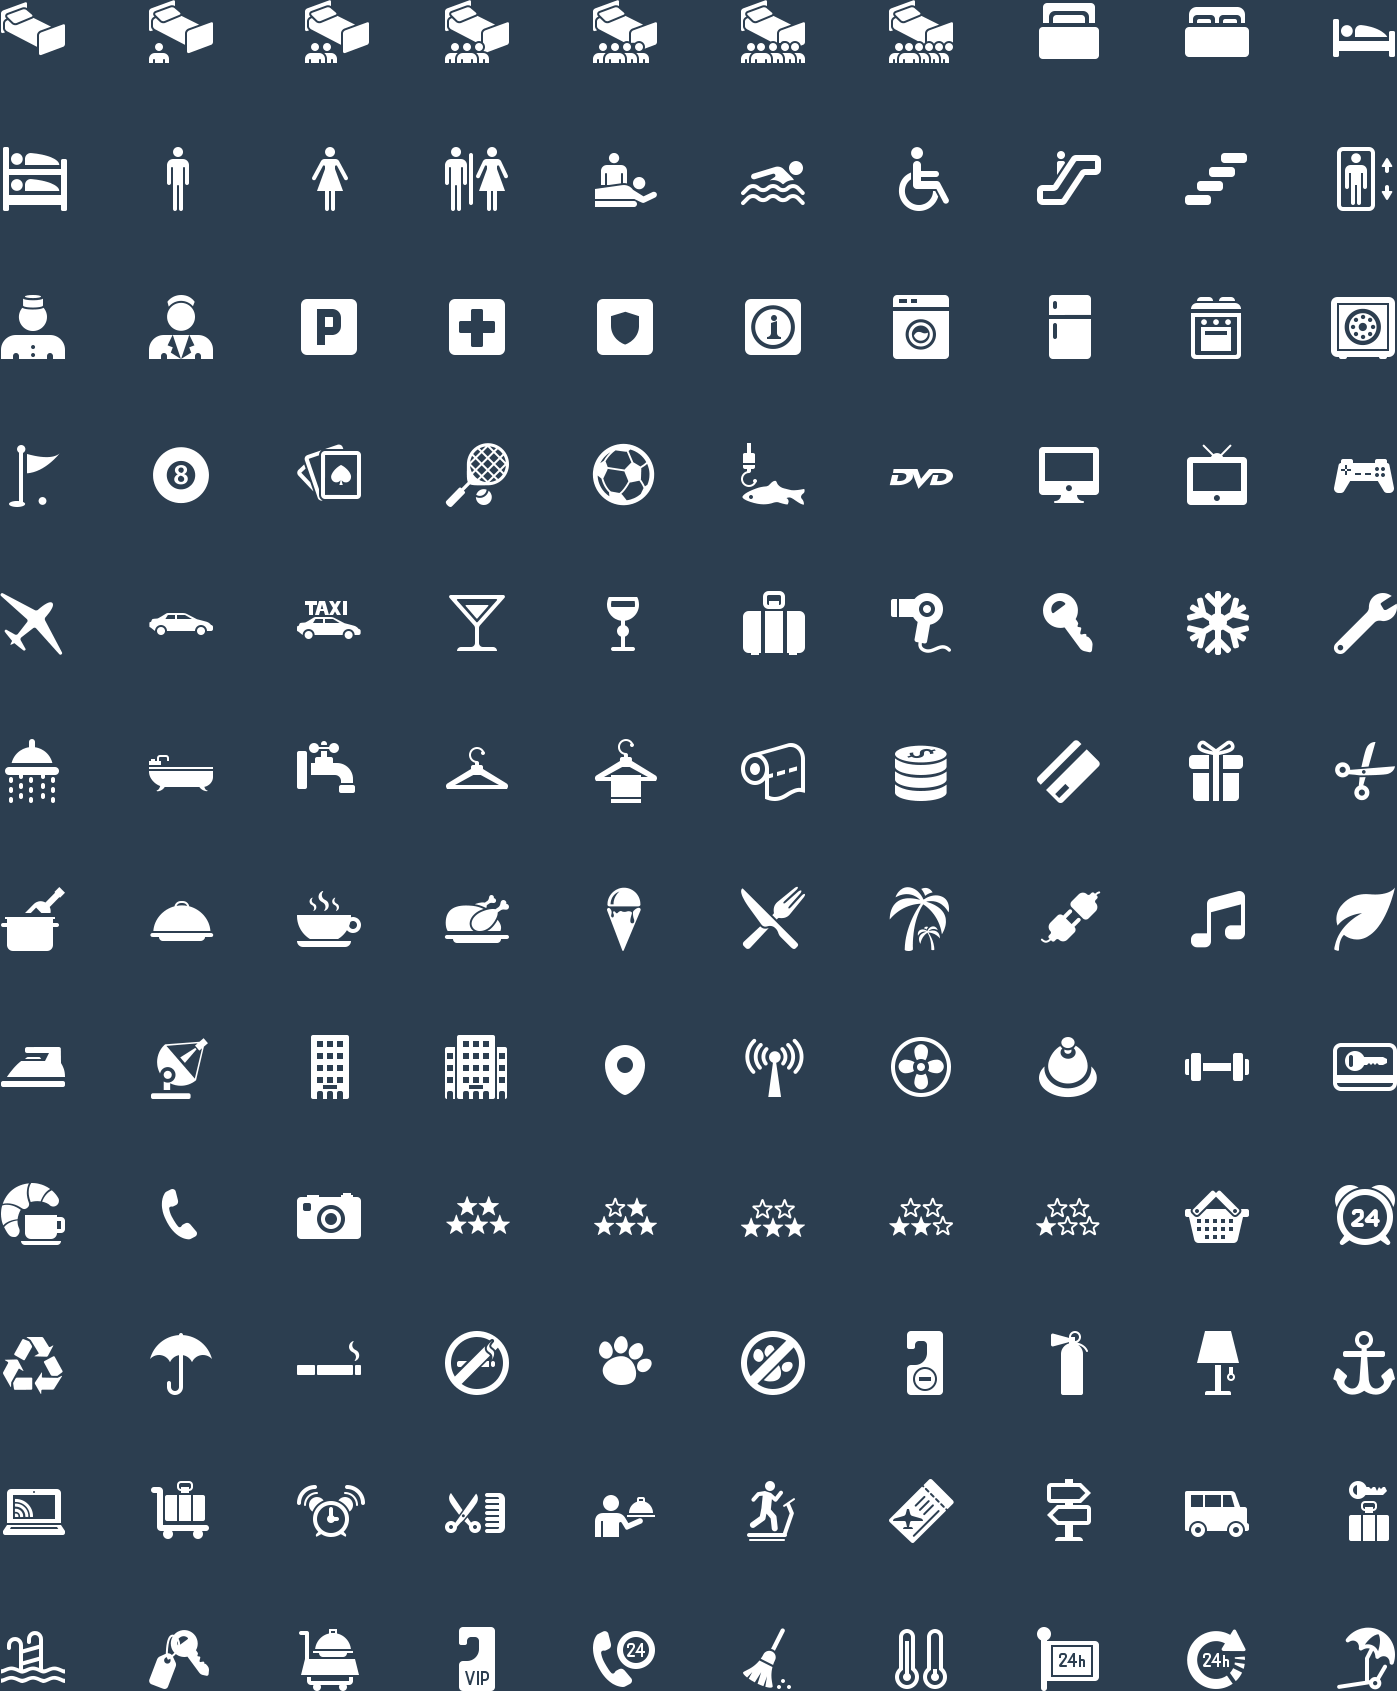 Hotel Glyph Icons